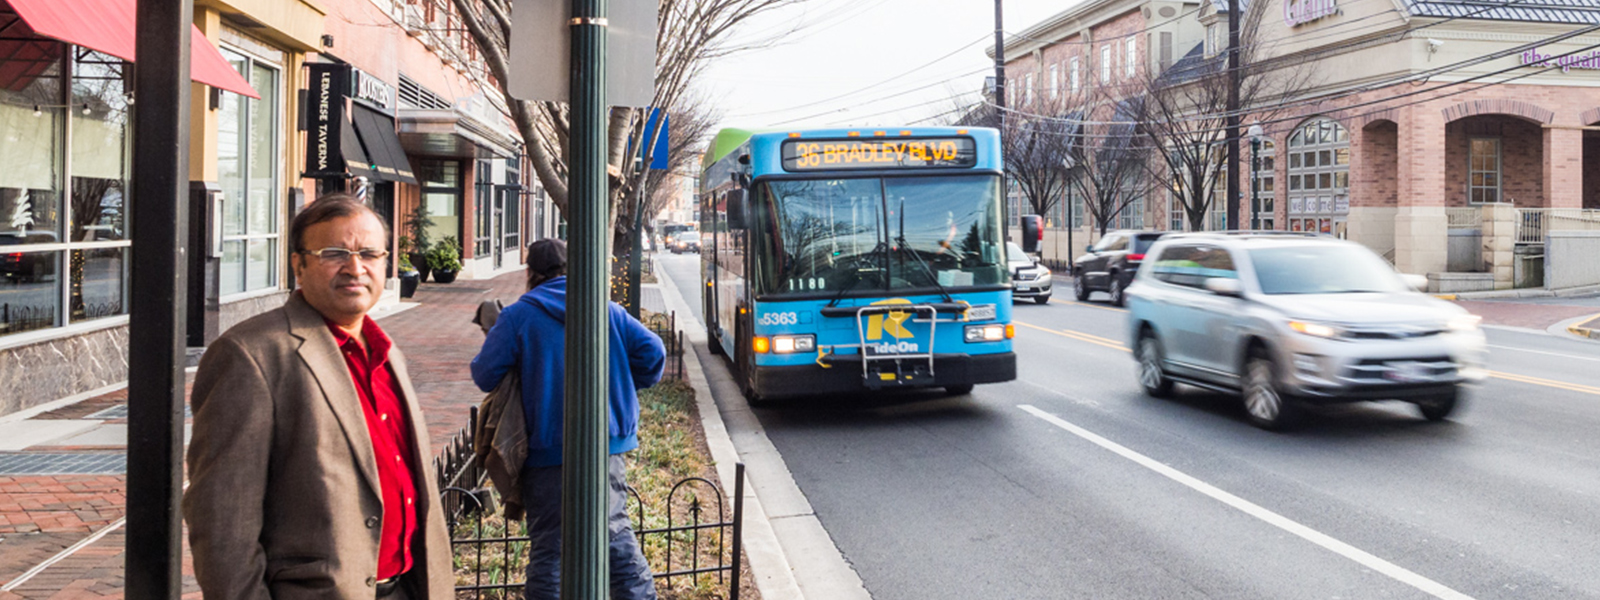 MD 355 BRT Recommendations